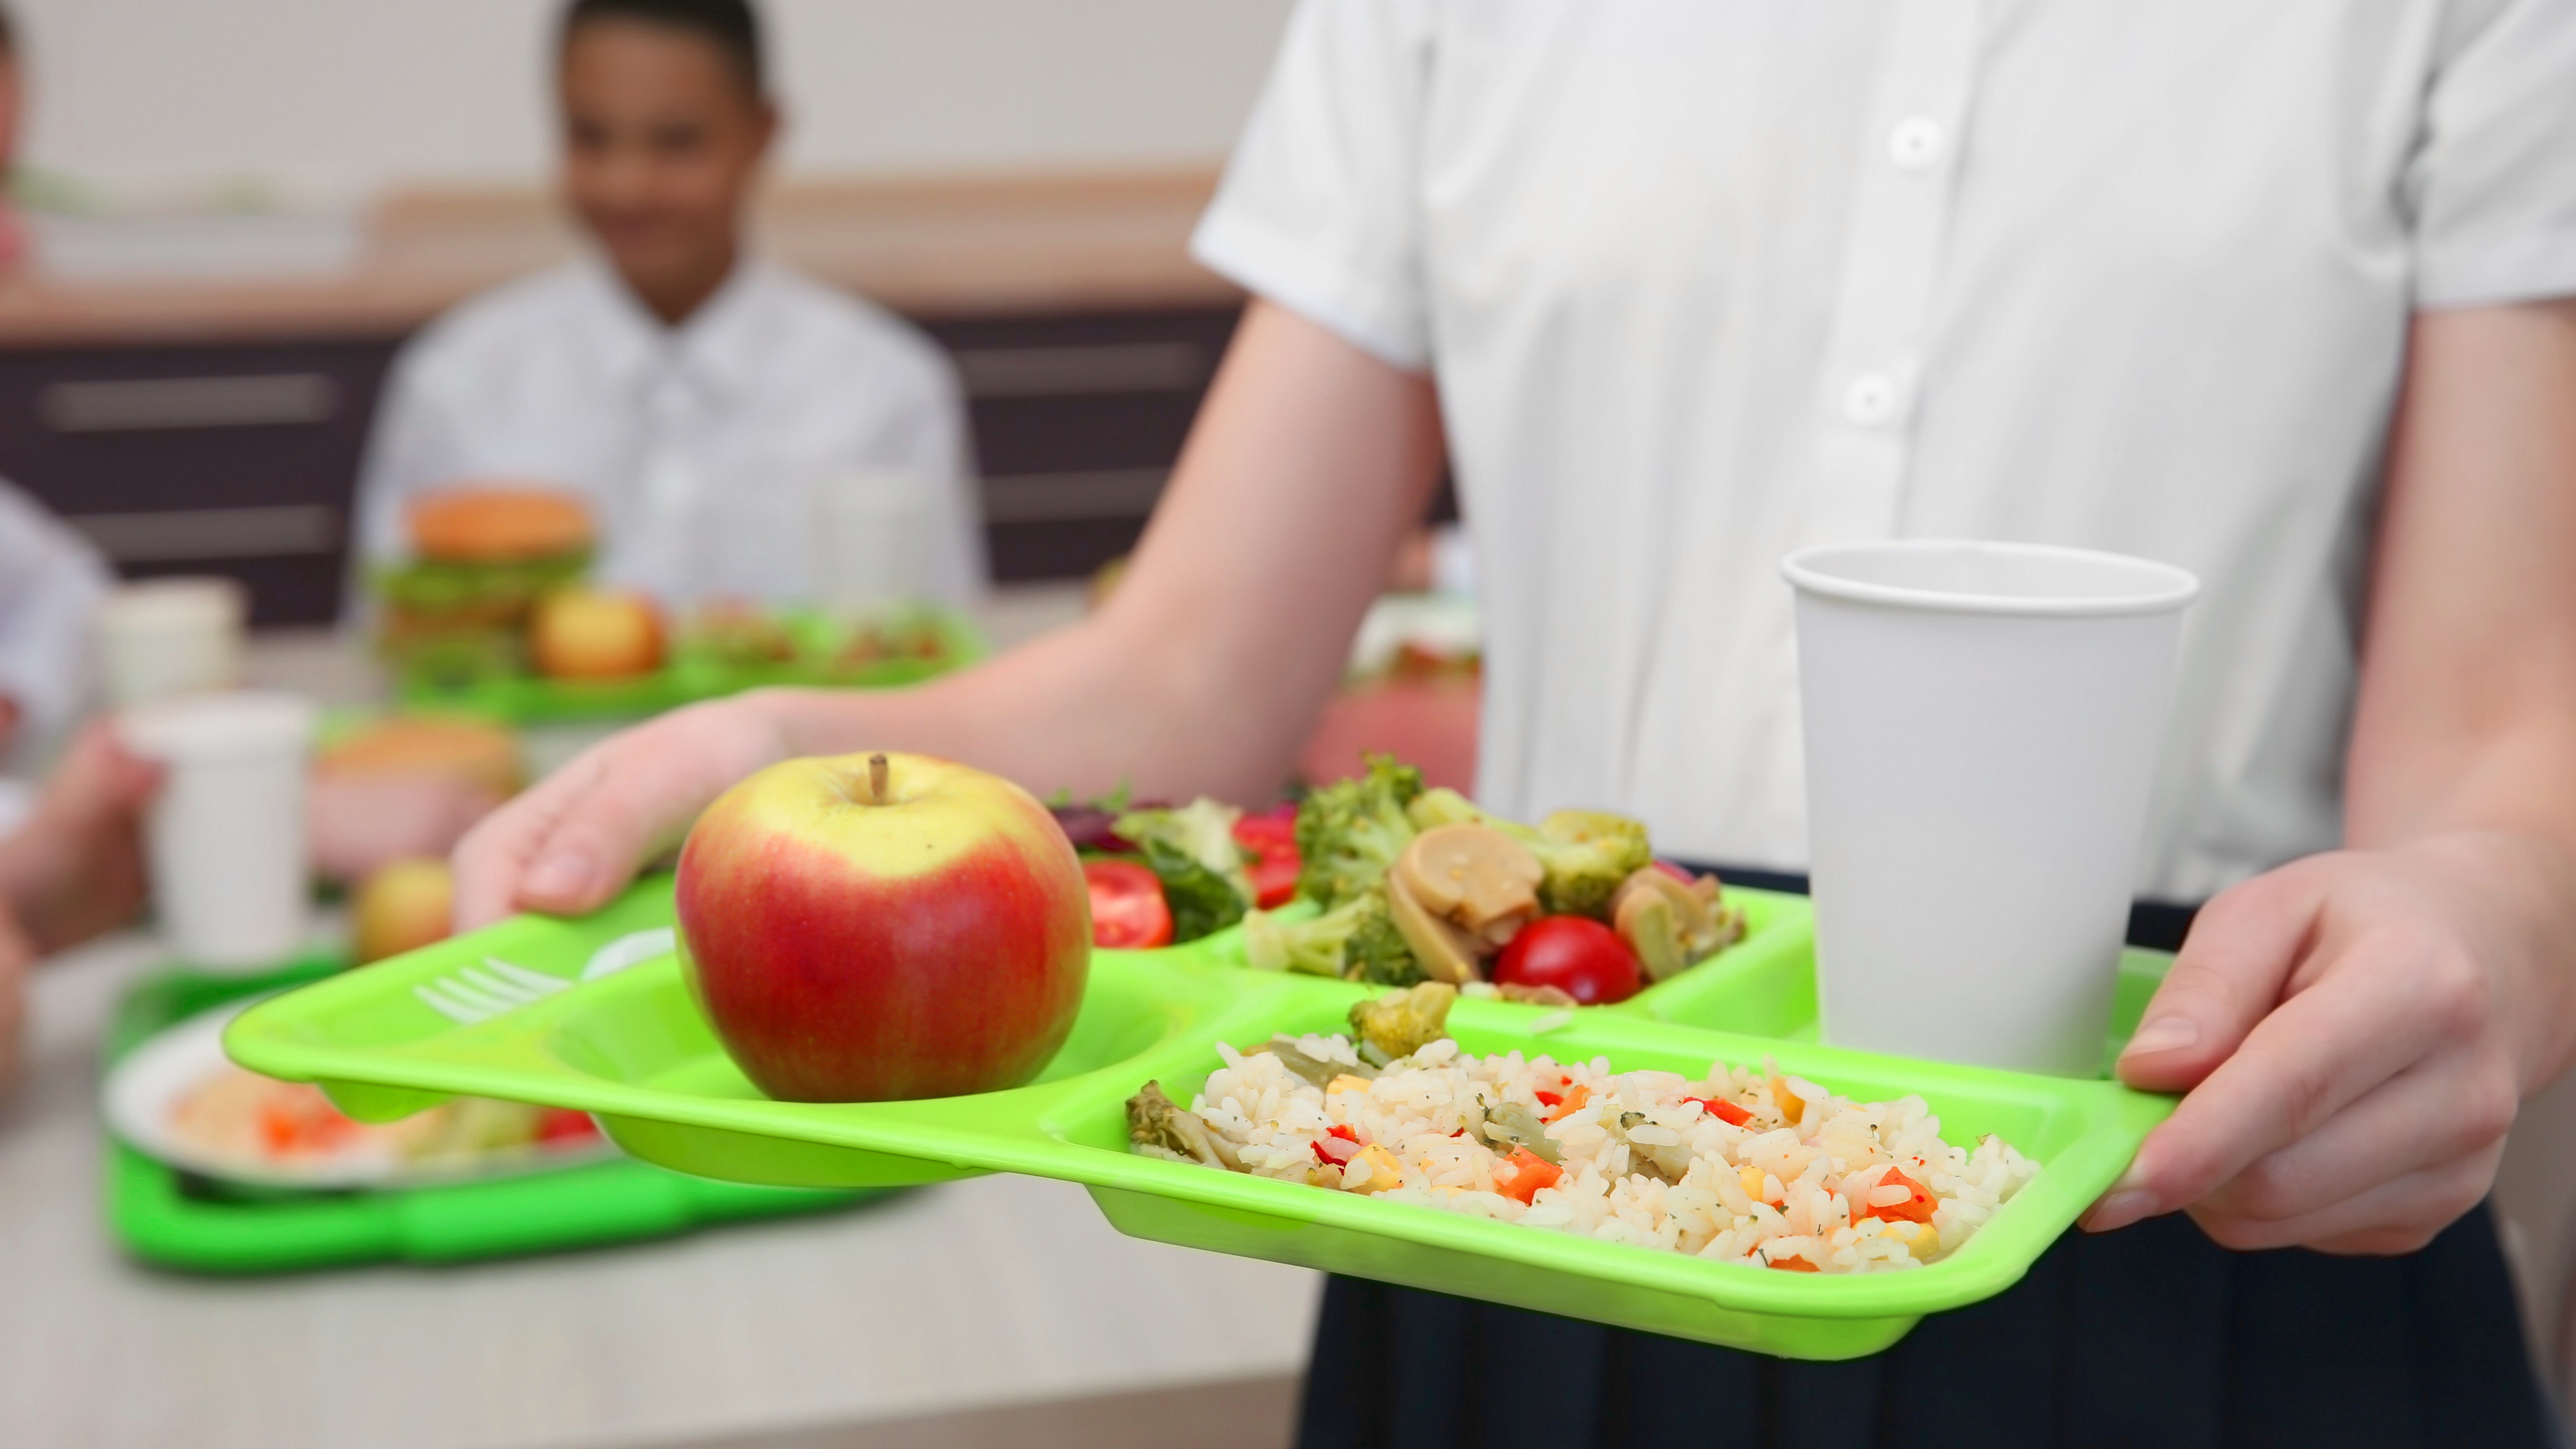 It's Time To Check Your School's Lunch Debt Policy